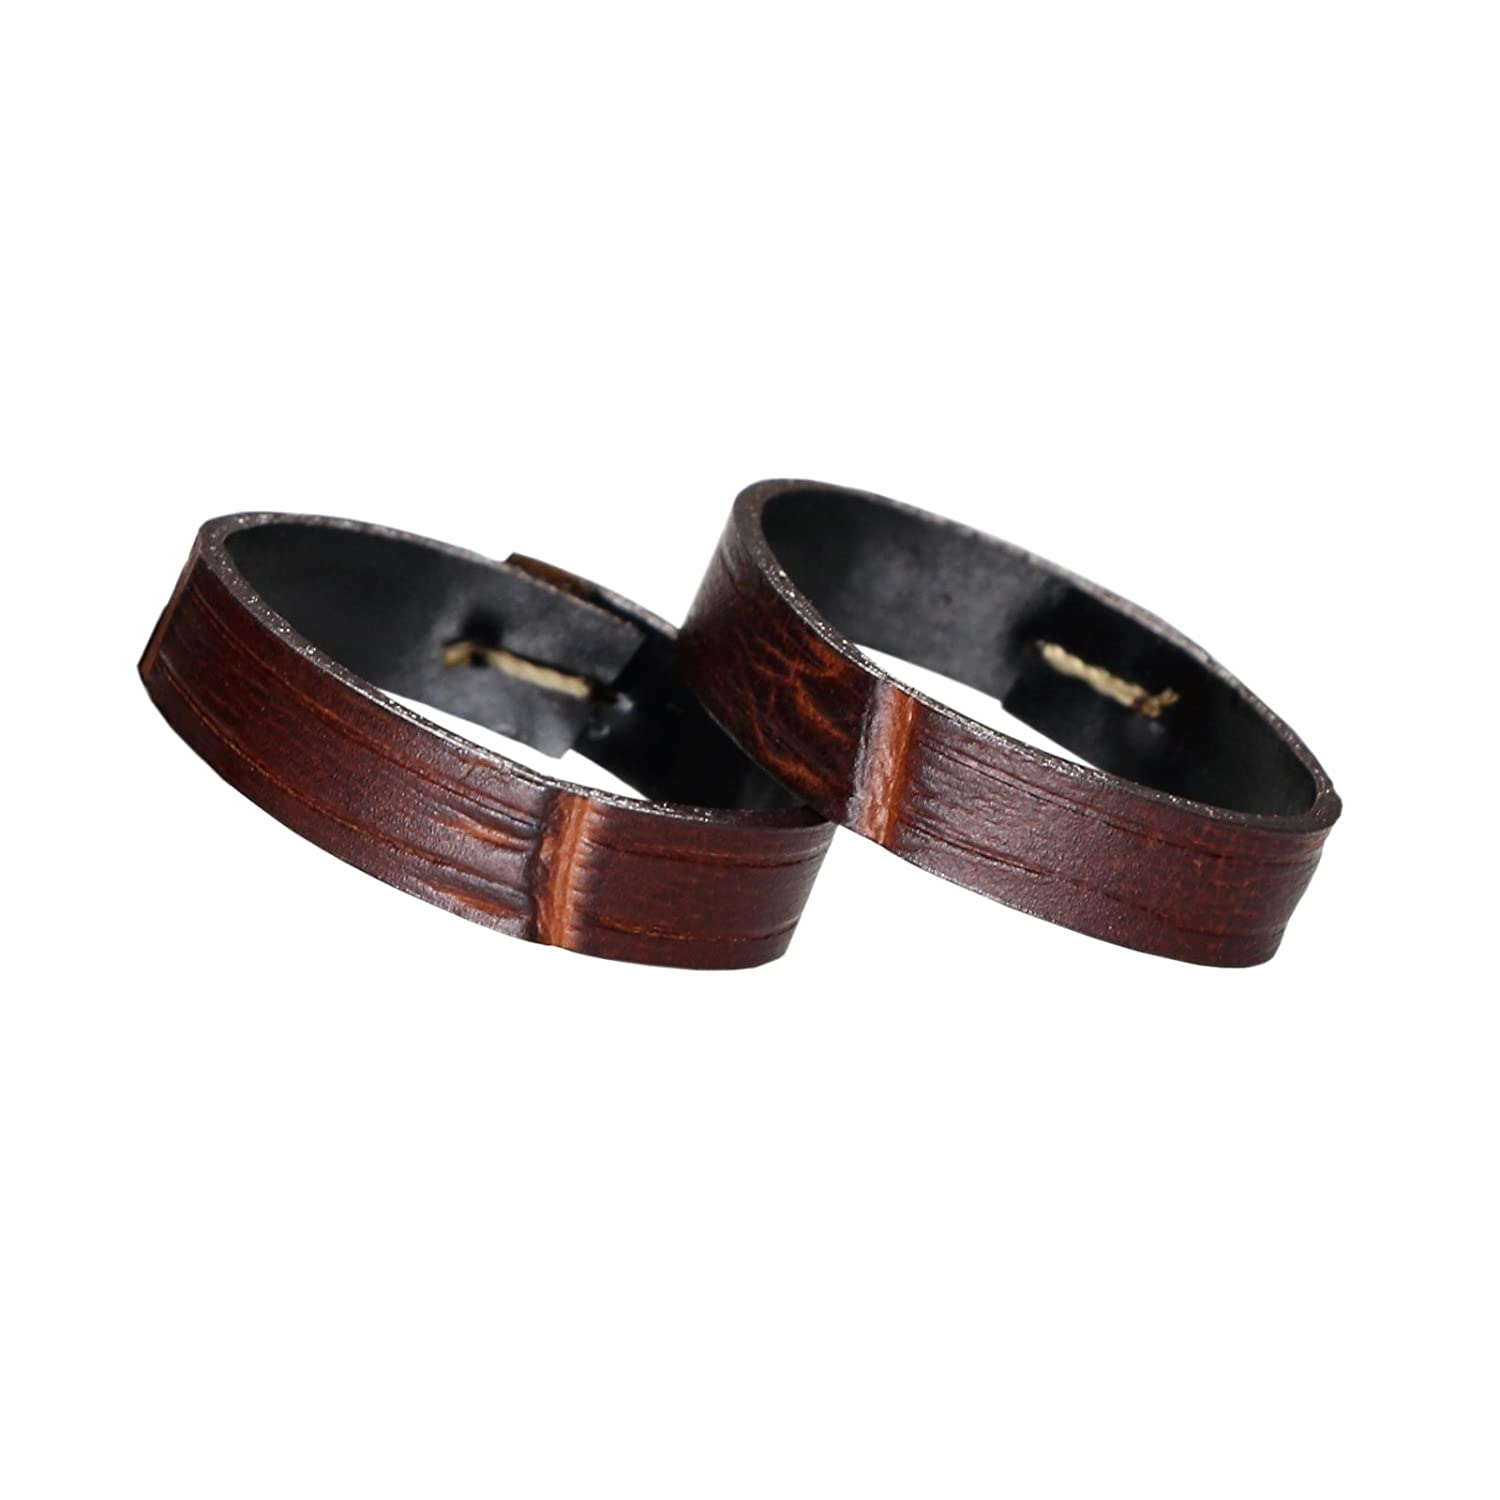 Premium Calf Hide Leather Watch Strap Loop Band Holder Change Crocodile Grain in Brown 22mm(Two Pieces One Pack)   Amazon.com